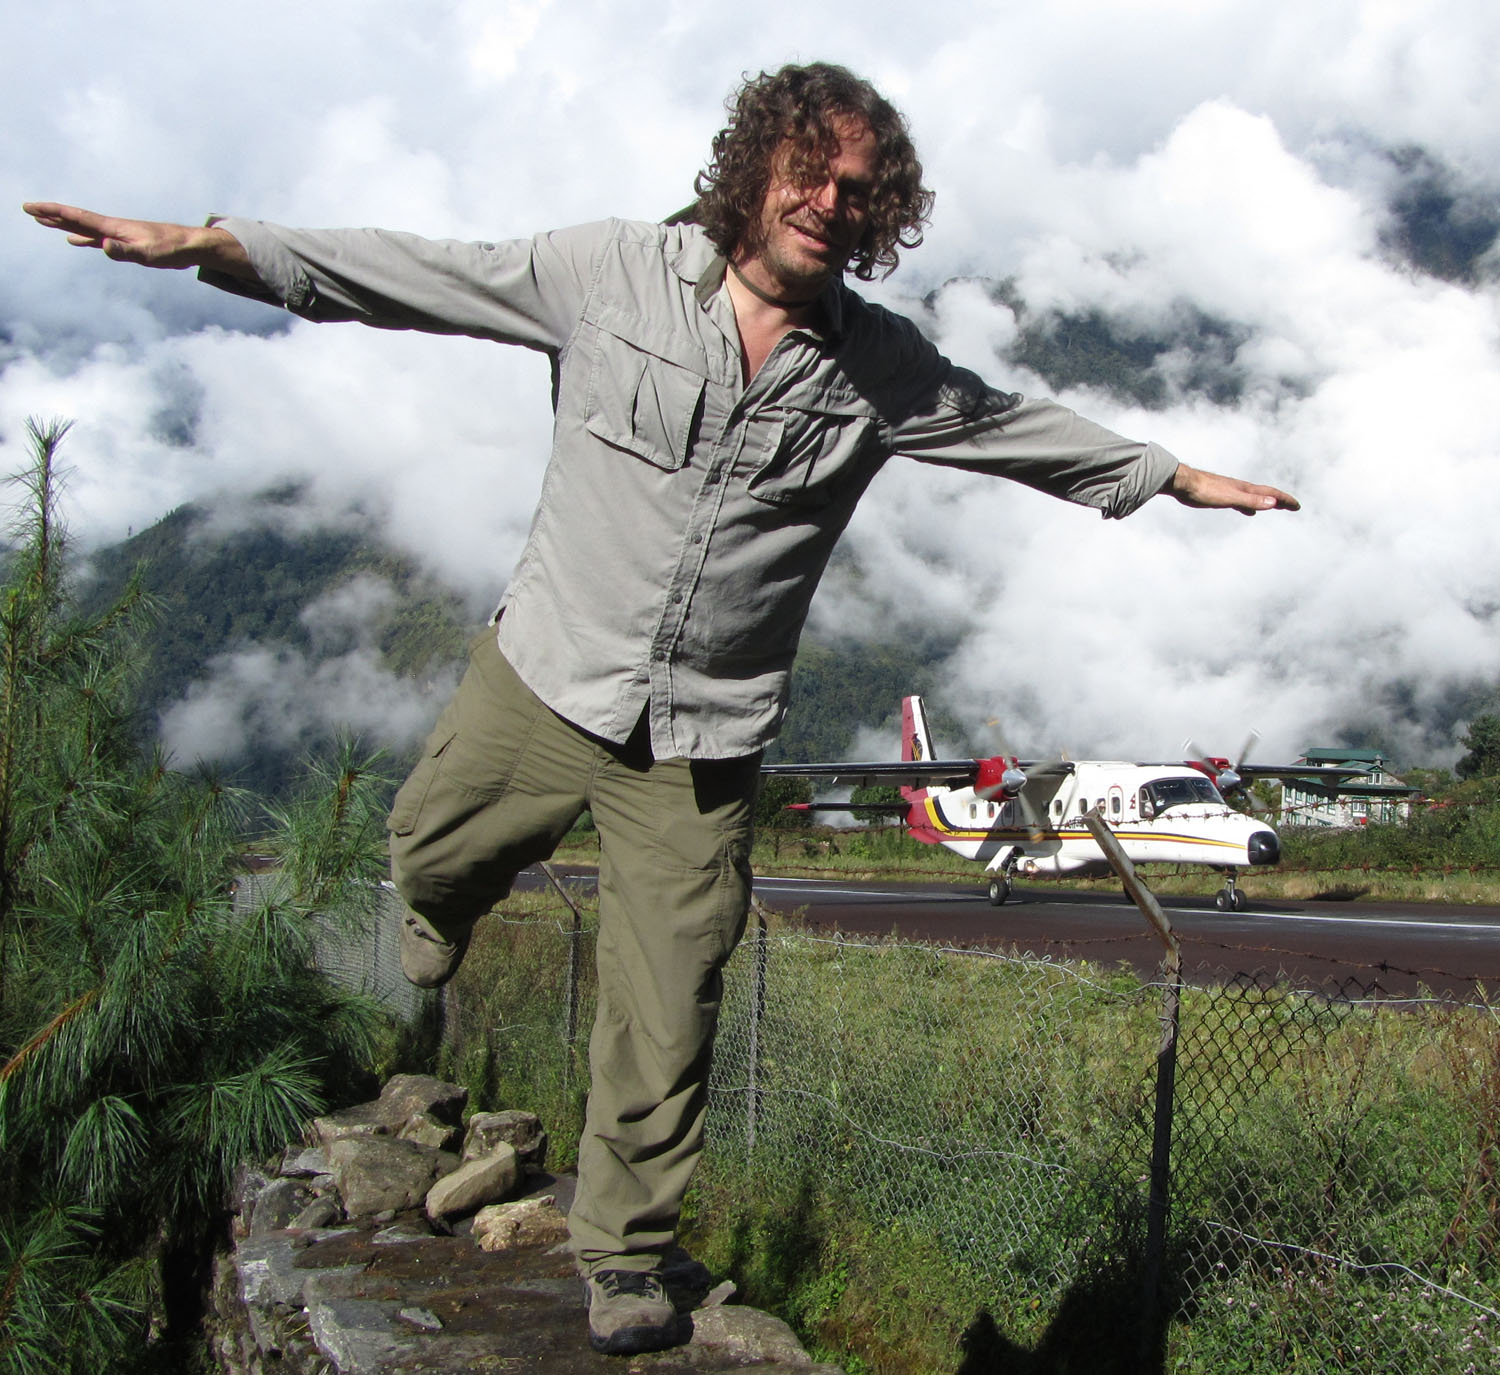 Nepal-Everest-Region-Trek-Day-01-Frank-Airplane